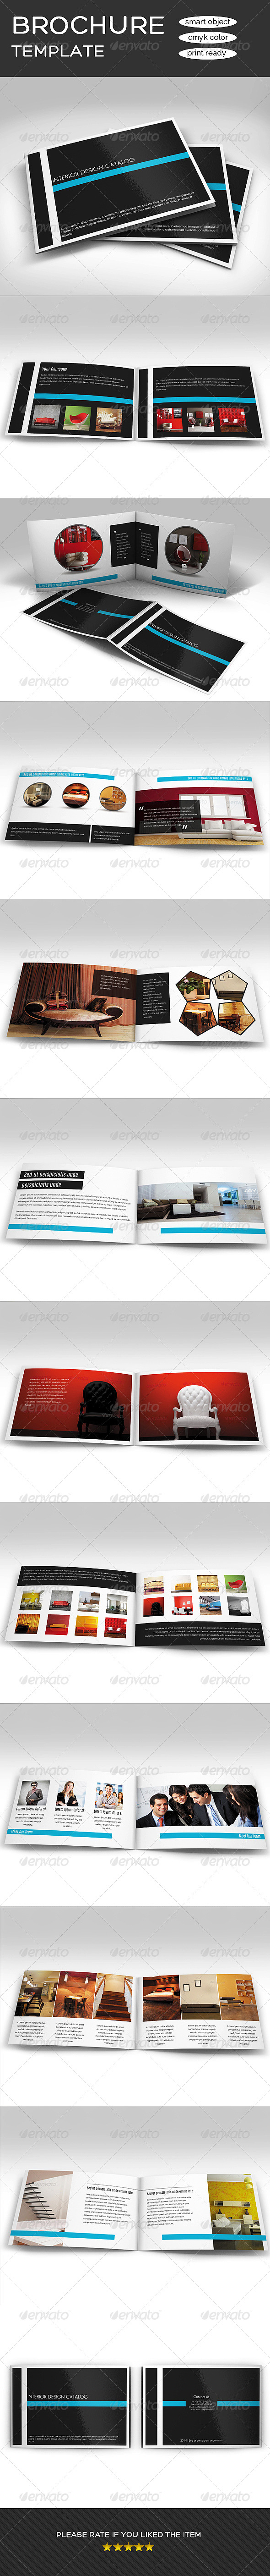 GraphicRiver Interior Design Catalog 8549991